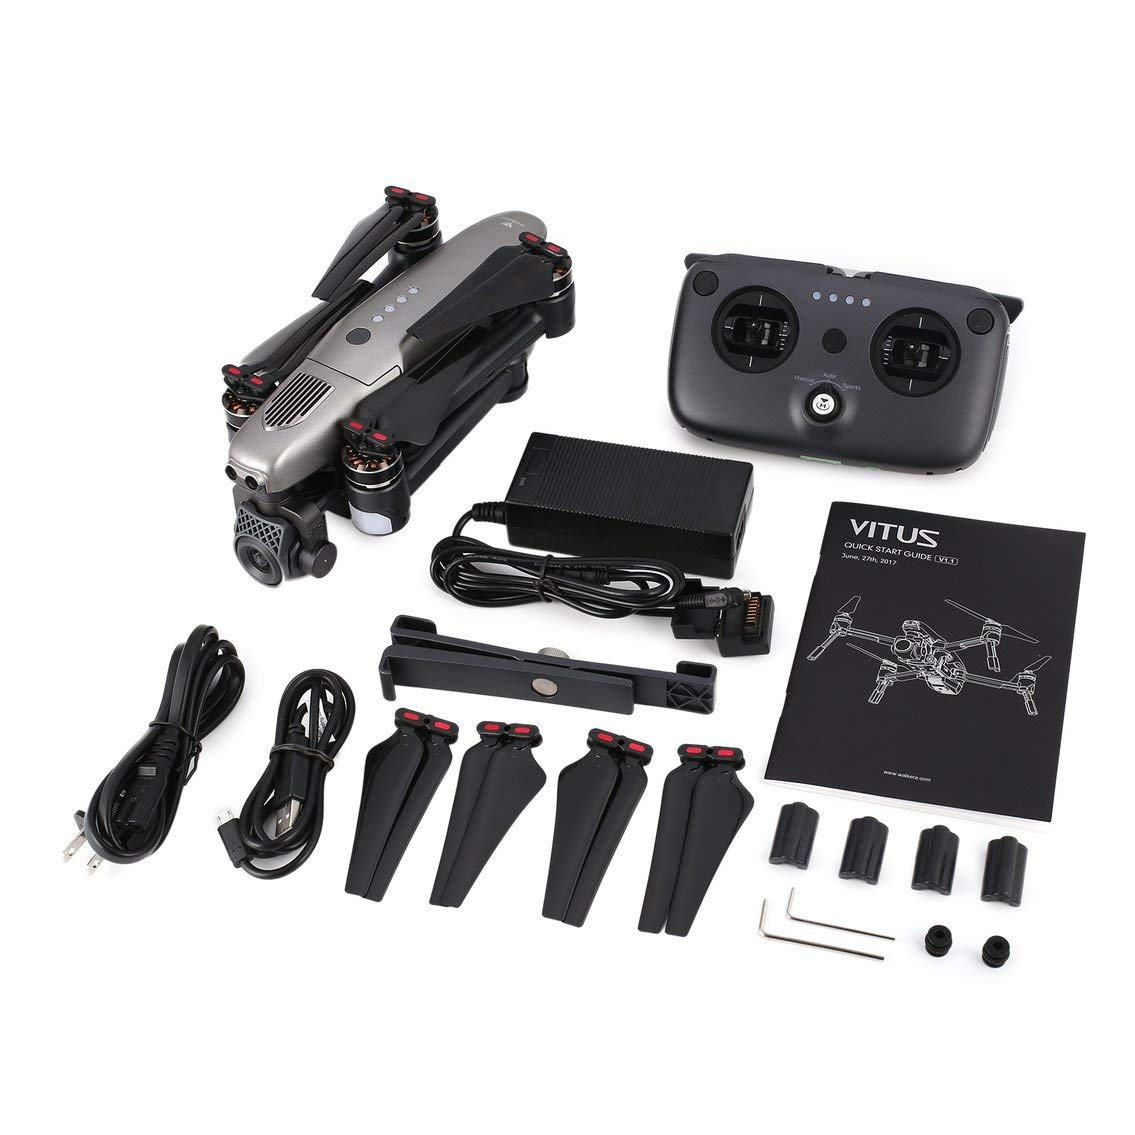 Contifan Walkera Vitus 320 Folding 4K Camera 5.8G FPV 3-Axis Gimbal GPS RC Drone Quadcopter